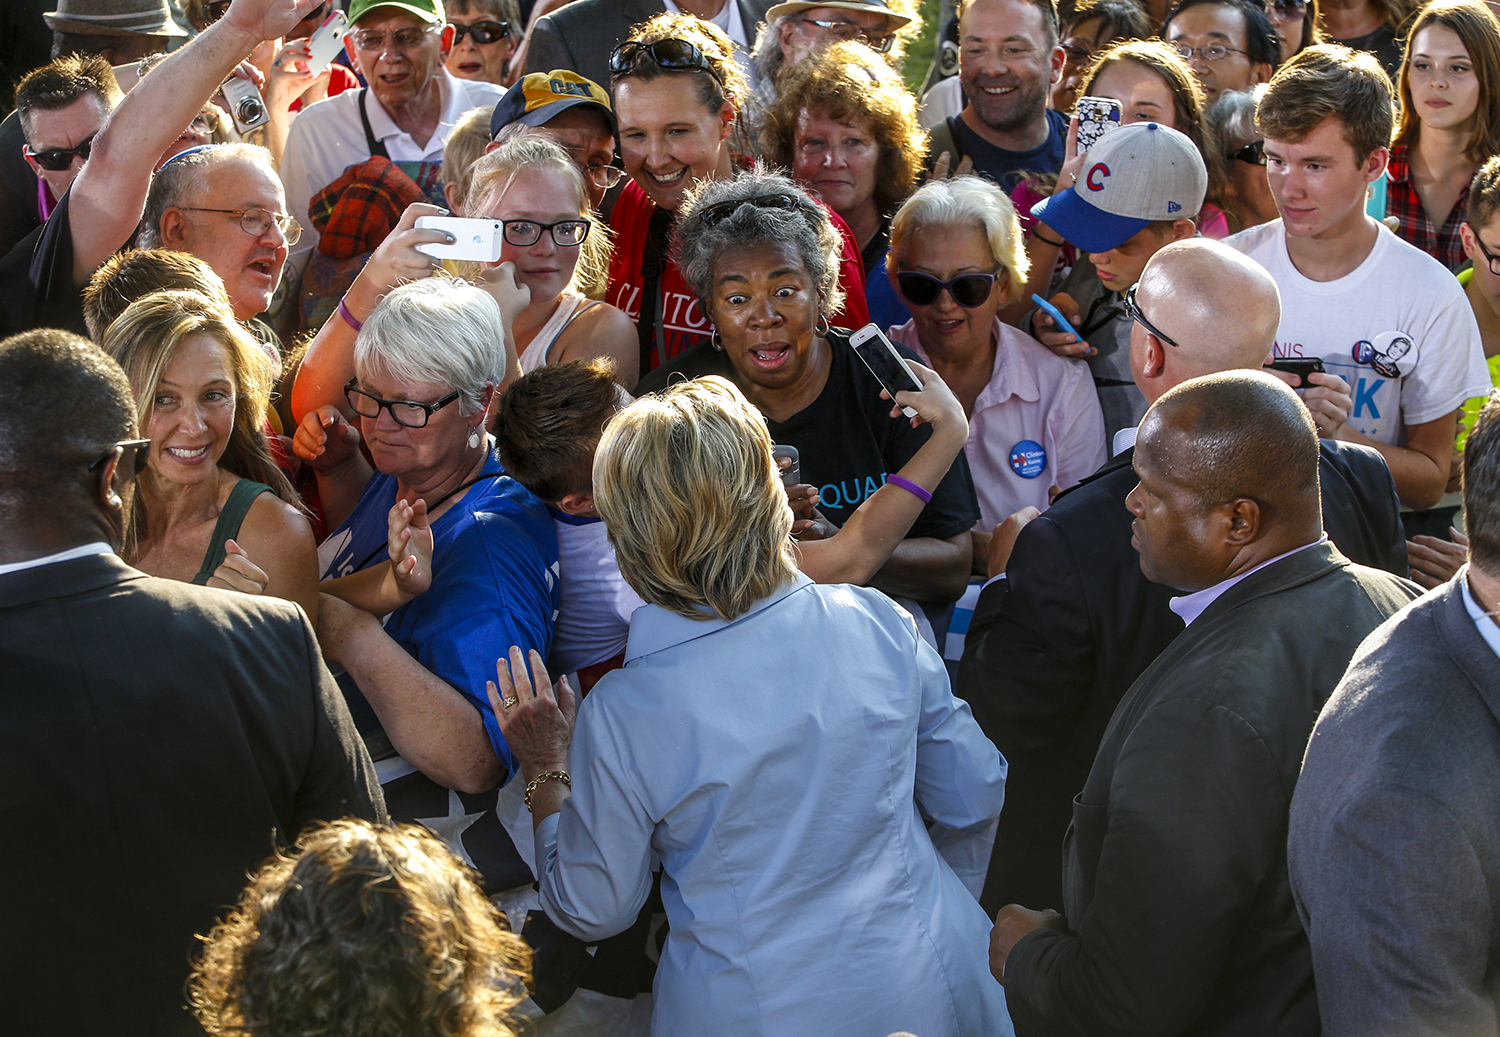 Democratic presidential candidate Hillary Clinton takes photos with supporters and shakes hands after speaking at the 49th annual Salute to Labor Chicken Fry at Illiniwek Park in Hampton, Illinois, Monday, September 5, 2016. The presidential hopeful returned to the event for the second consecutive year after campaigning in both Pennsylvania and Ohio earlier in the day.